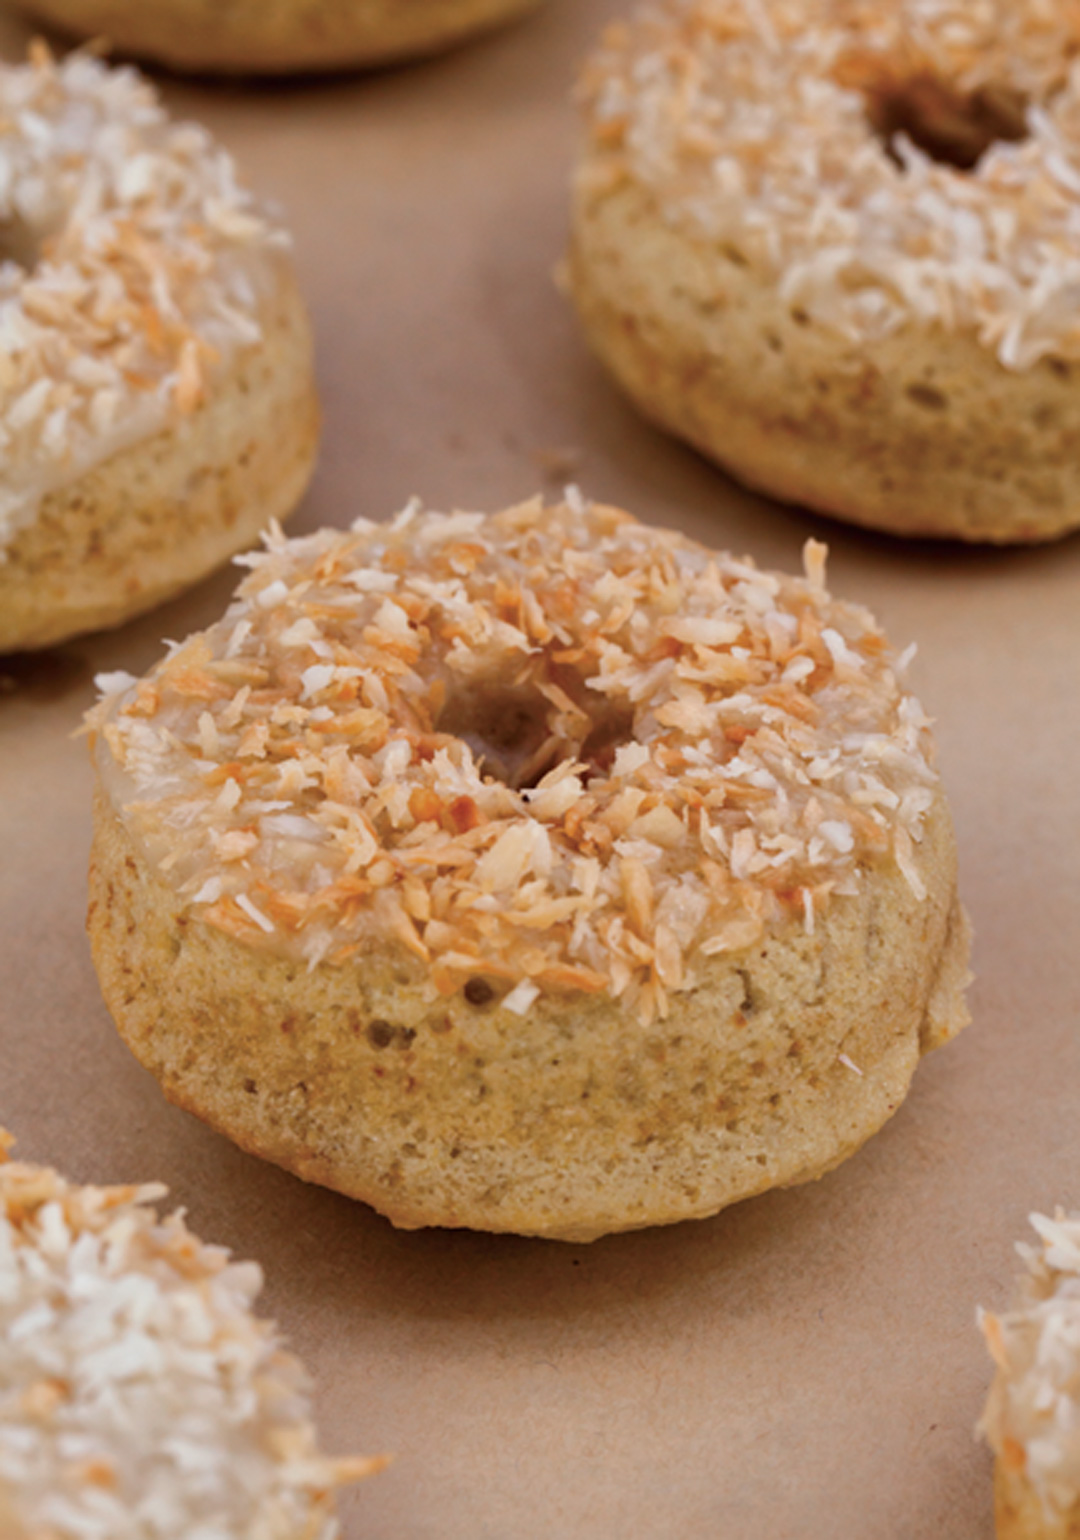 How to Make Toasted Coconut Donuts